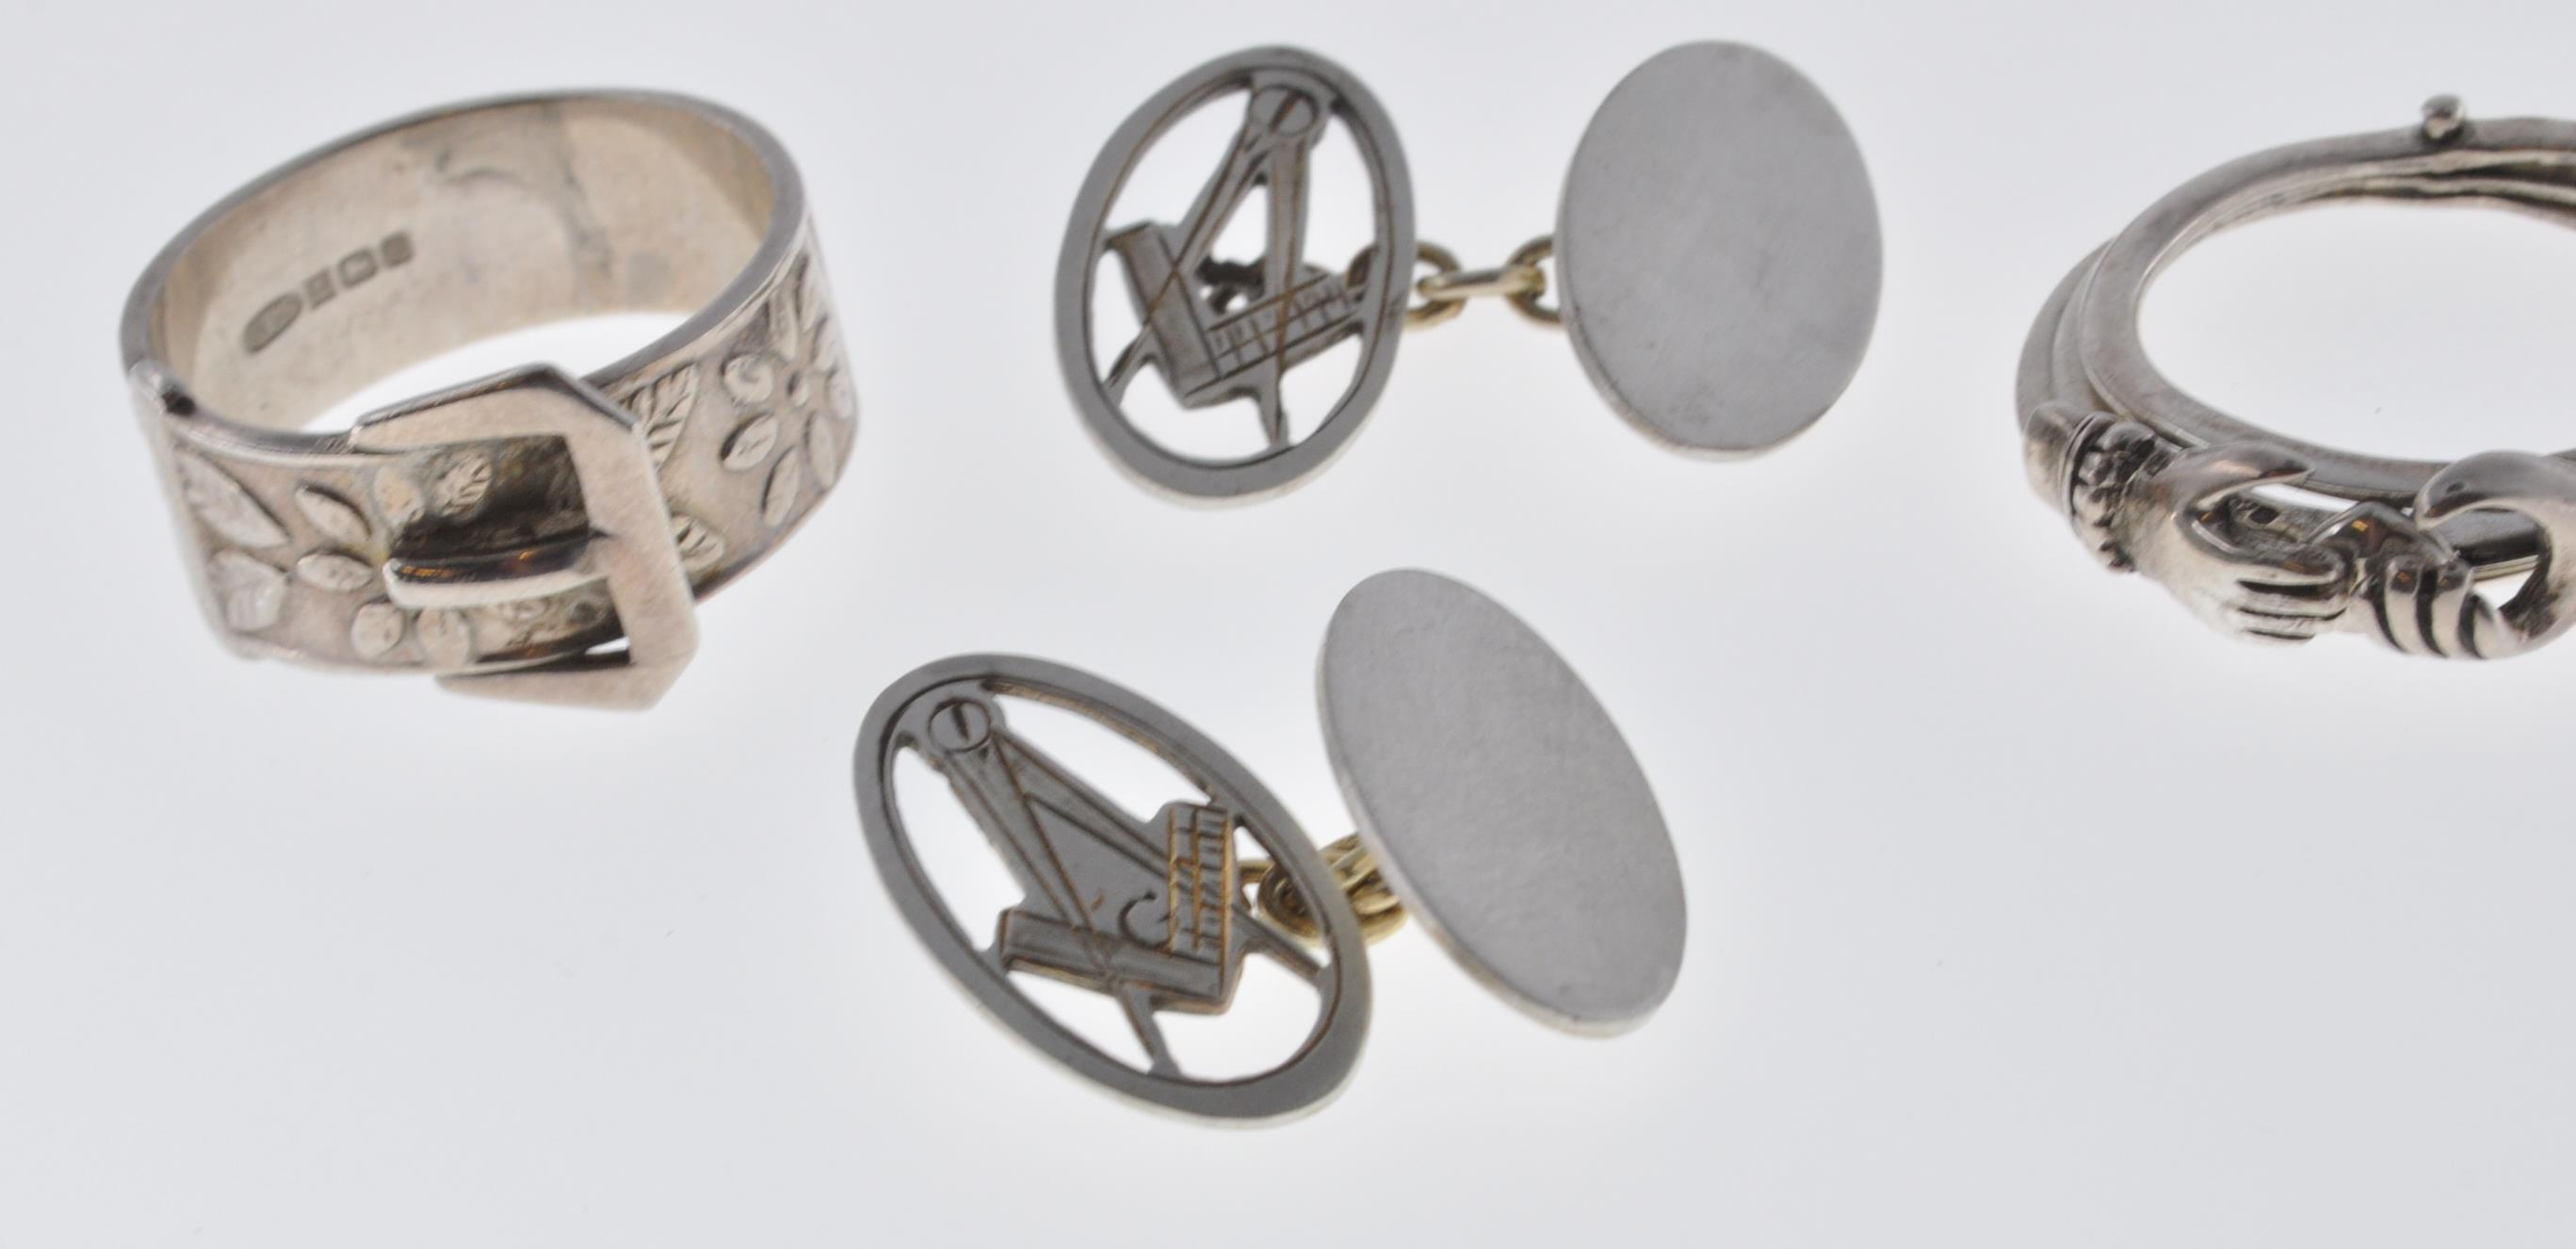 VINTAGE MASONIC CUFFLINKS AND TWO SILVER RINGS - Image 5 of 7